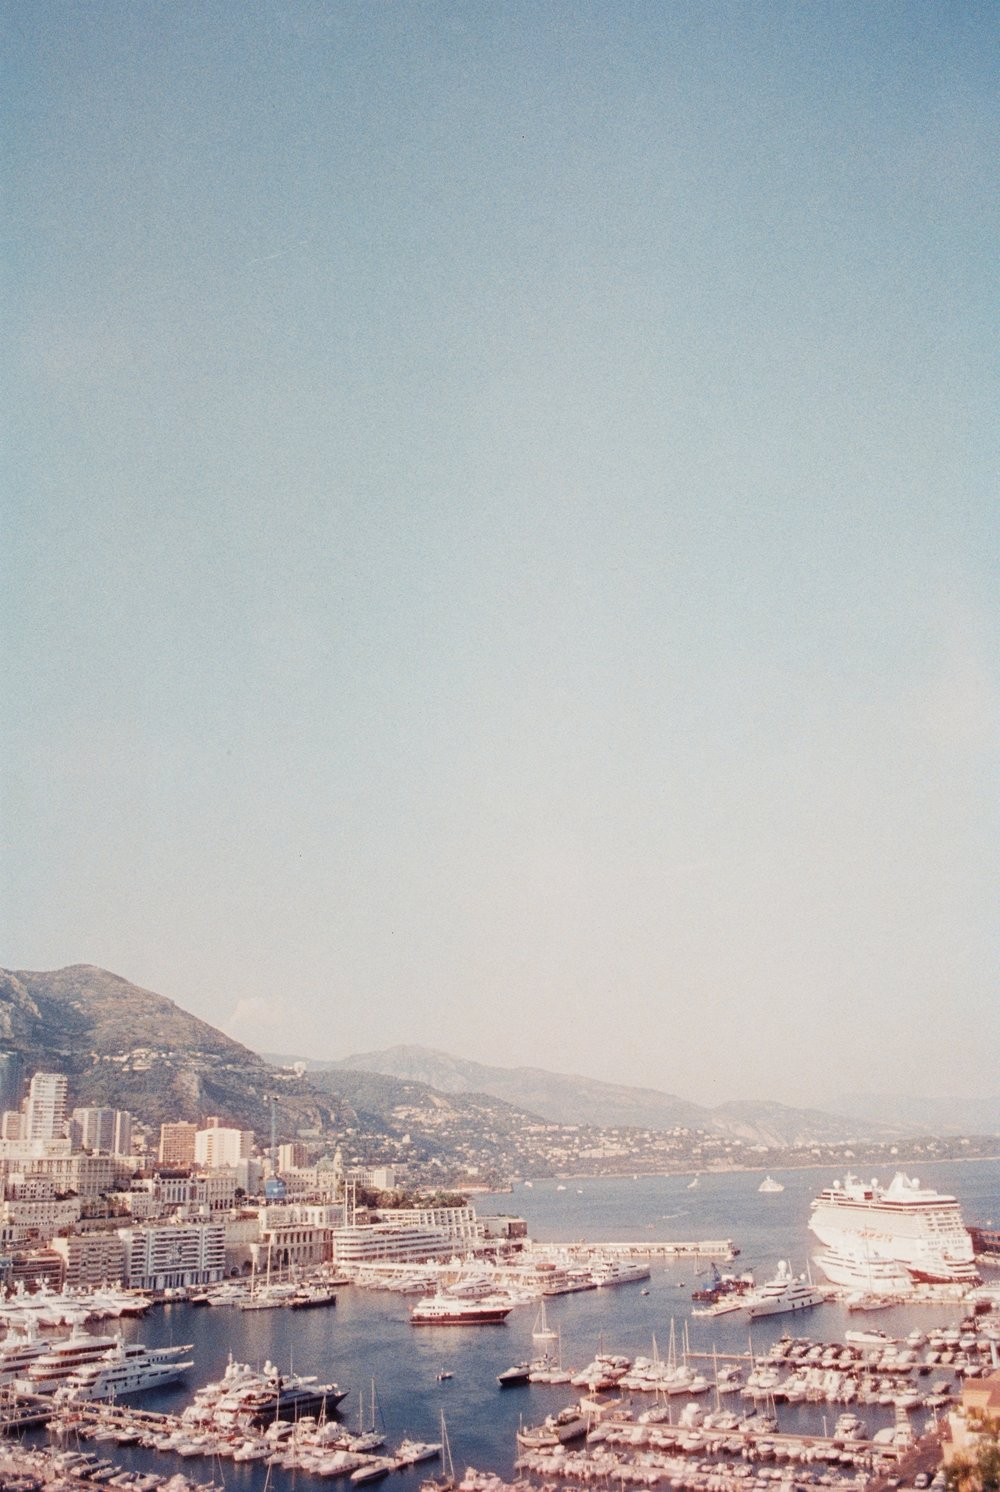 Cinestill 800T shot at 1600 (+2) daytime in Monaco, French Riviera. - Due to it's tungsten white balance, without filtration it gives daylight a blue/ purple tint. This can be corrected with filtration (85B - warm)